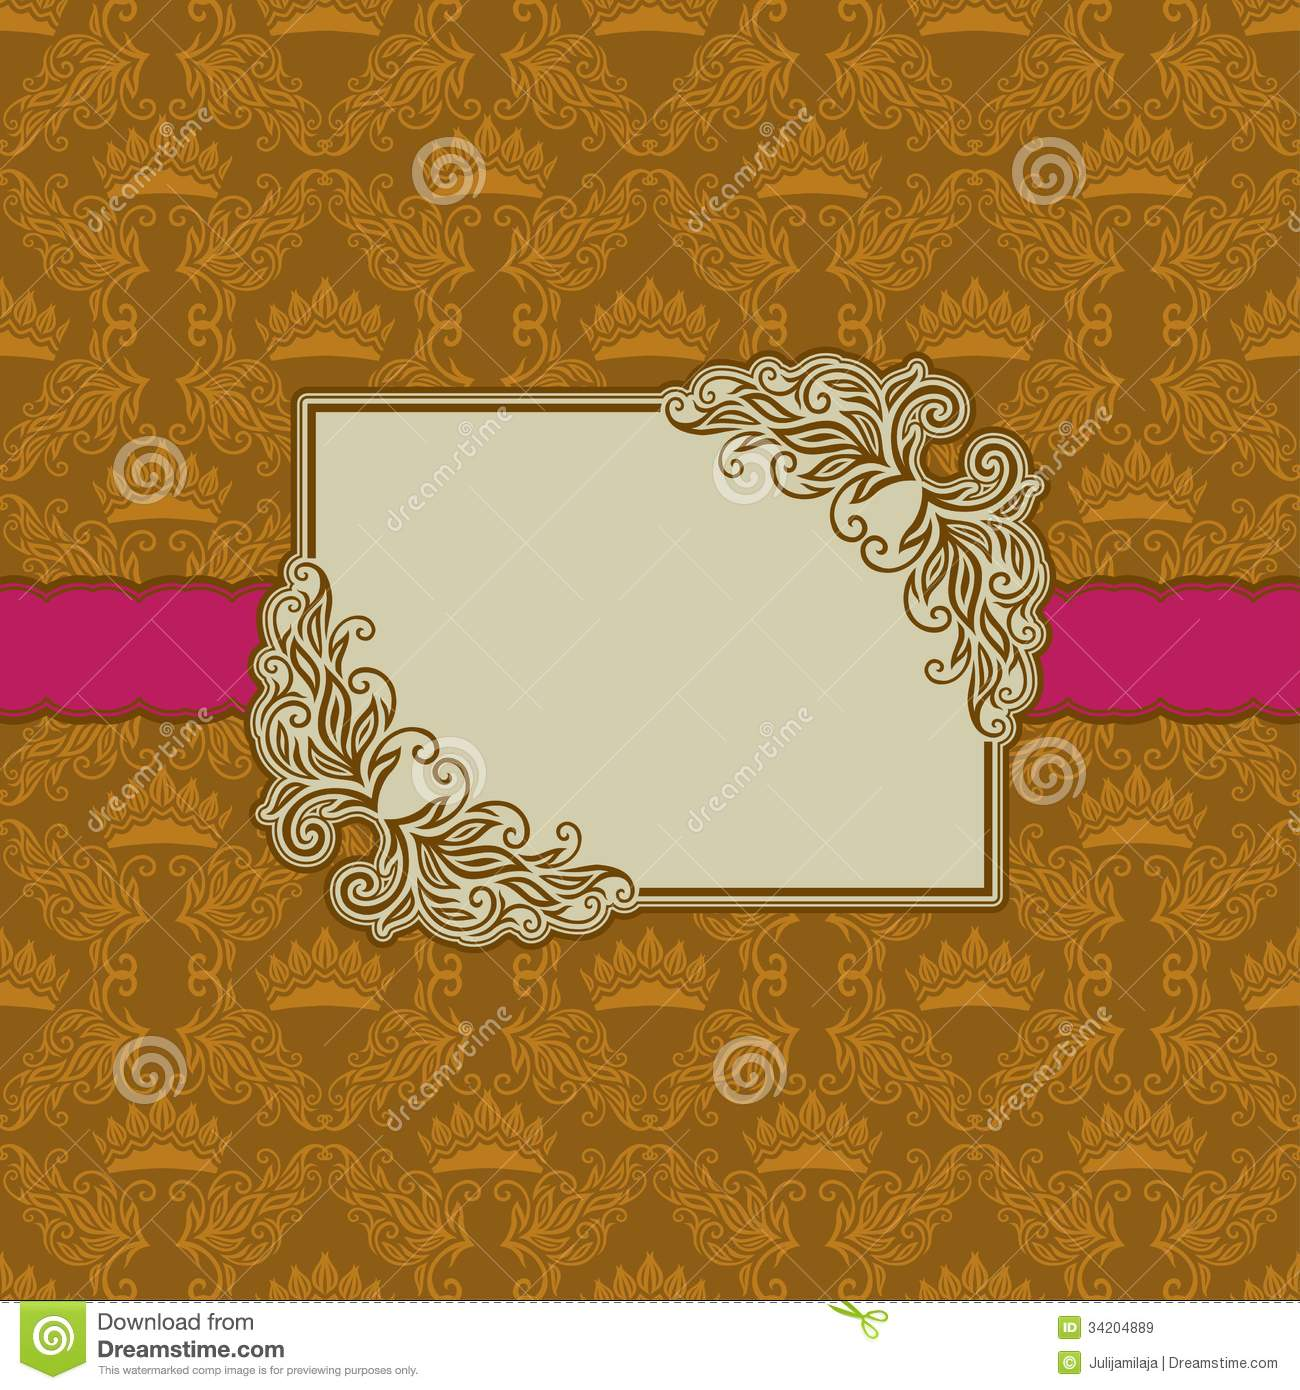 Template Frame Design For Greeting Card . Royalty Free